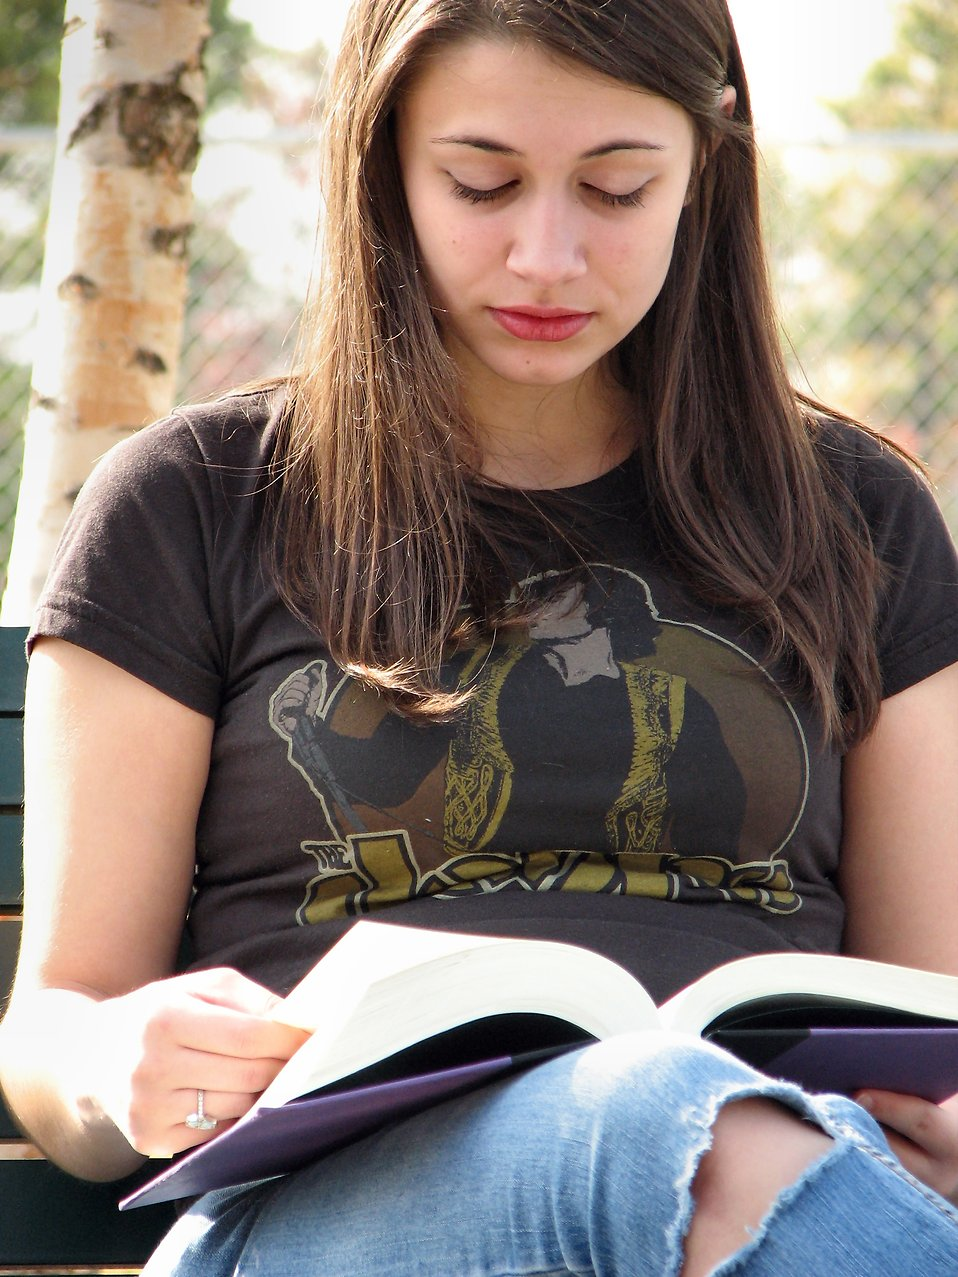 Teenage girl reading a book : Free Stock Photo